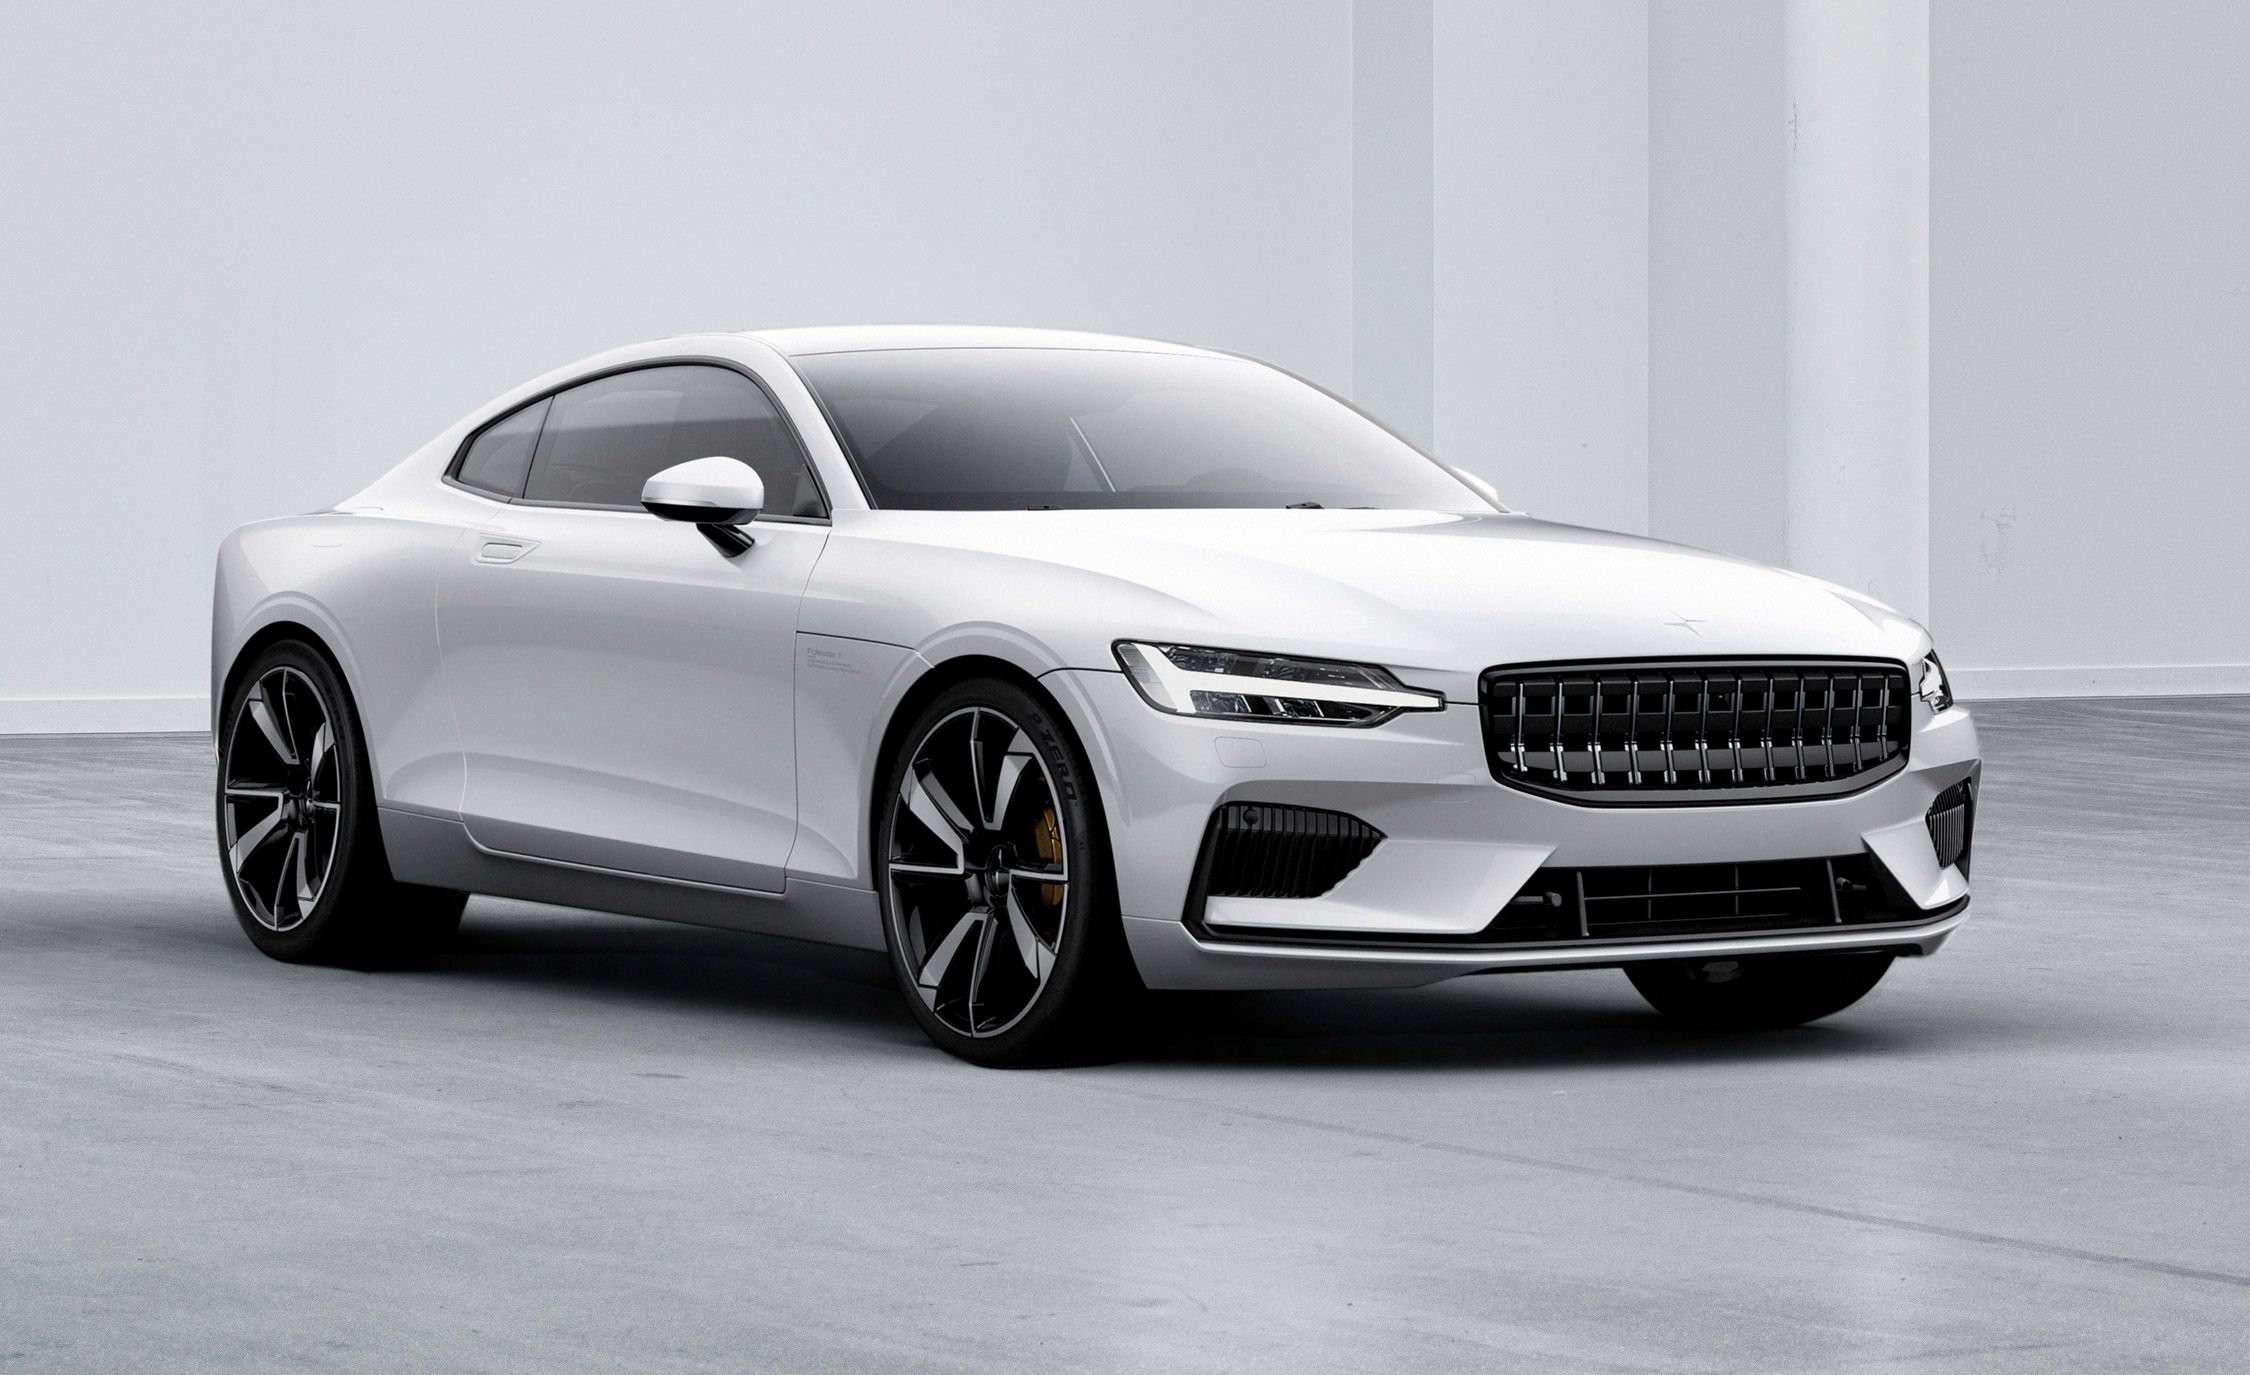 2020 Polestar 1: Swanky, Swedish, and Just the Beginning